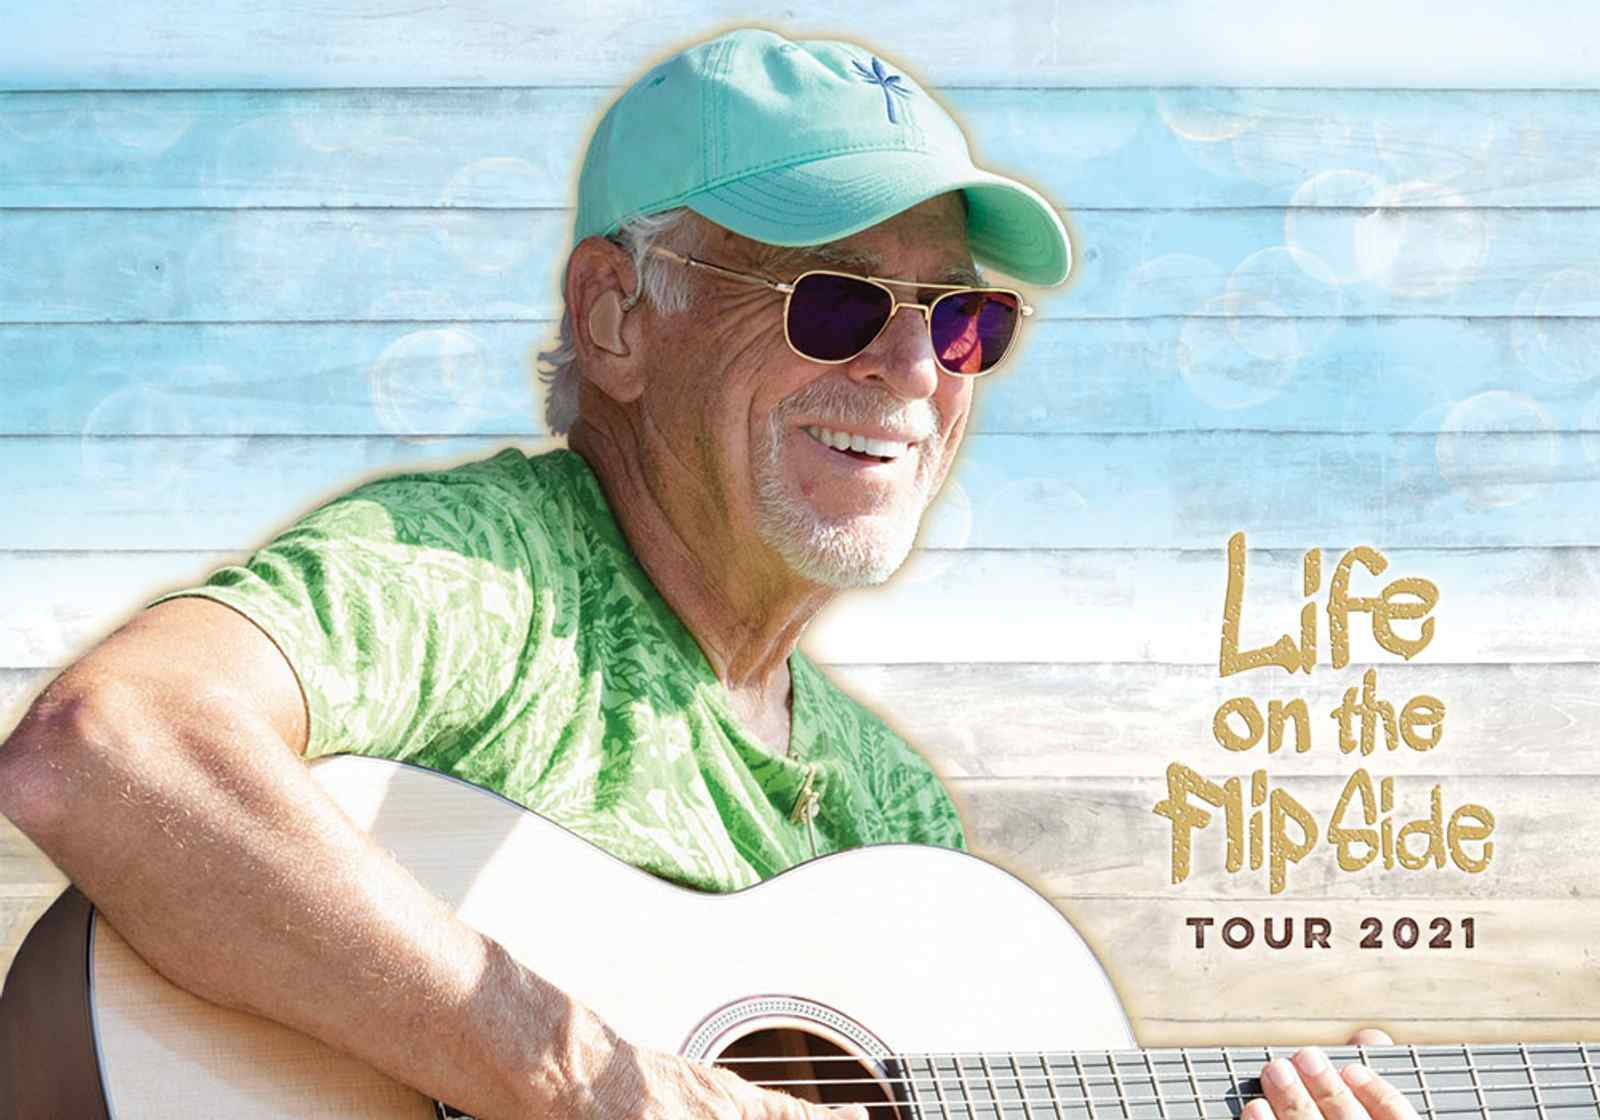 Concert Update: Life On The Flip Side Tour 2021